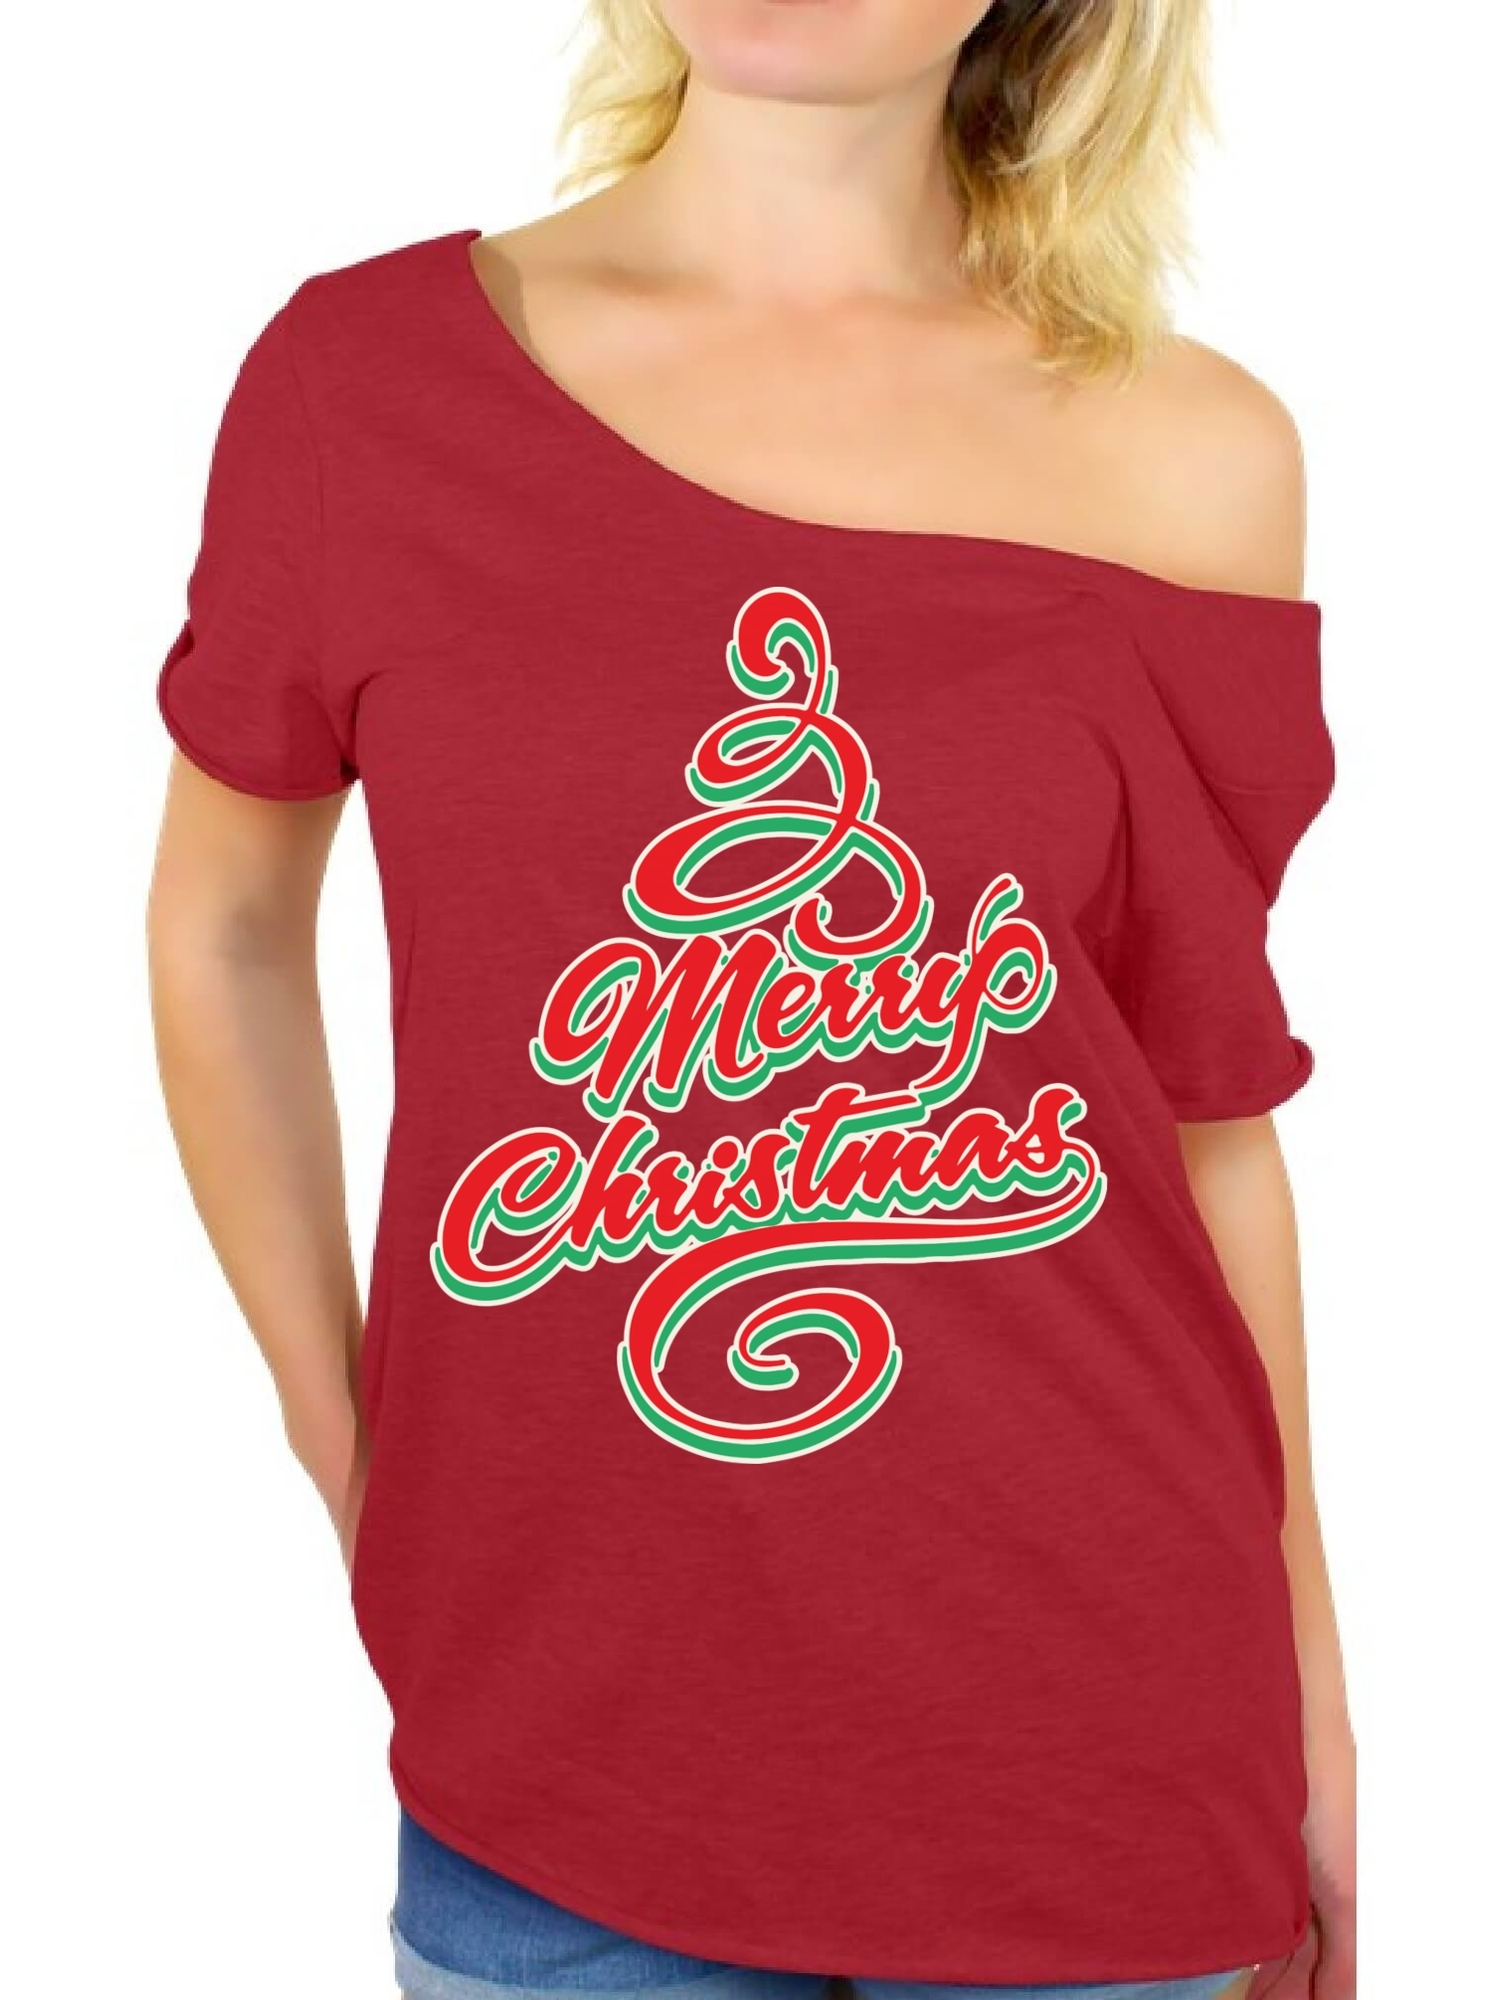 4008b80f159192 Awkward Styles Merry Christmas Off Shoulder Shirt Christmas Tree Off the Shoulder  T Shirt Slouchy Oversized Shirt Women's Holiday Shirt Merry Christmas ...